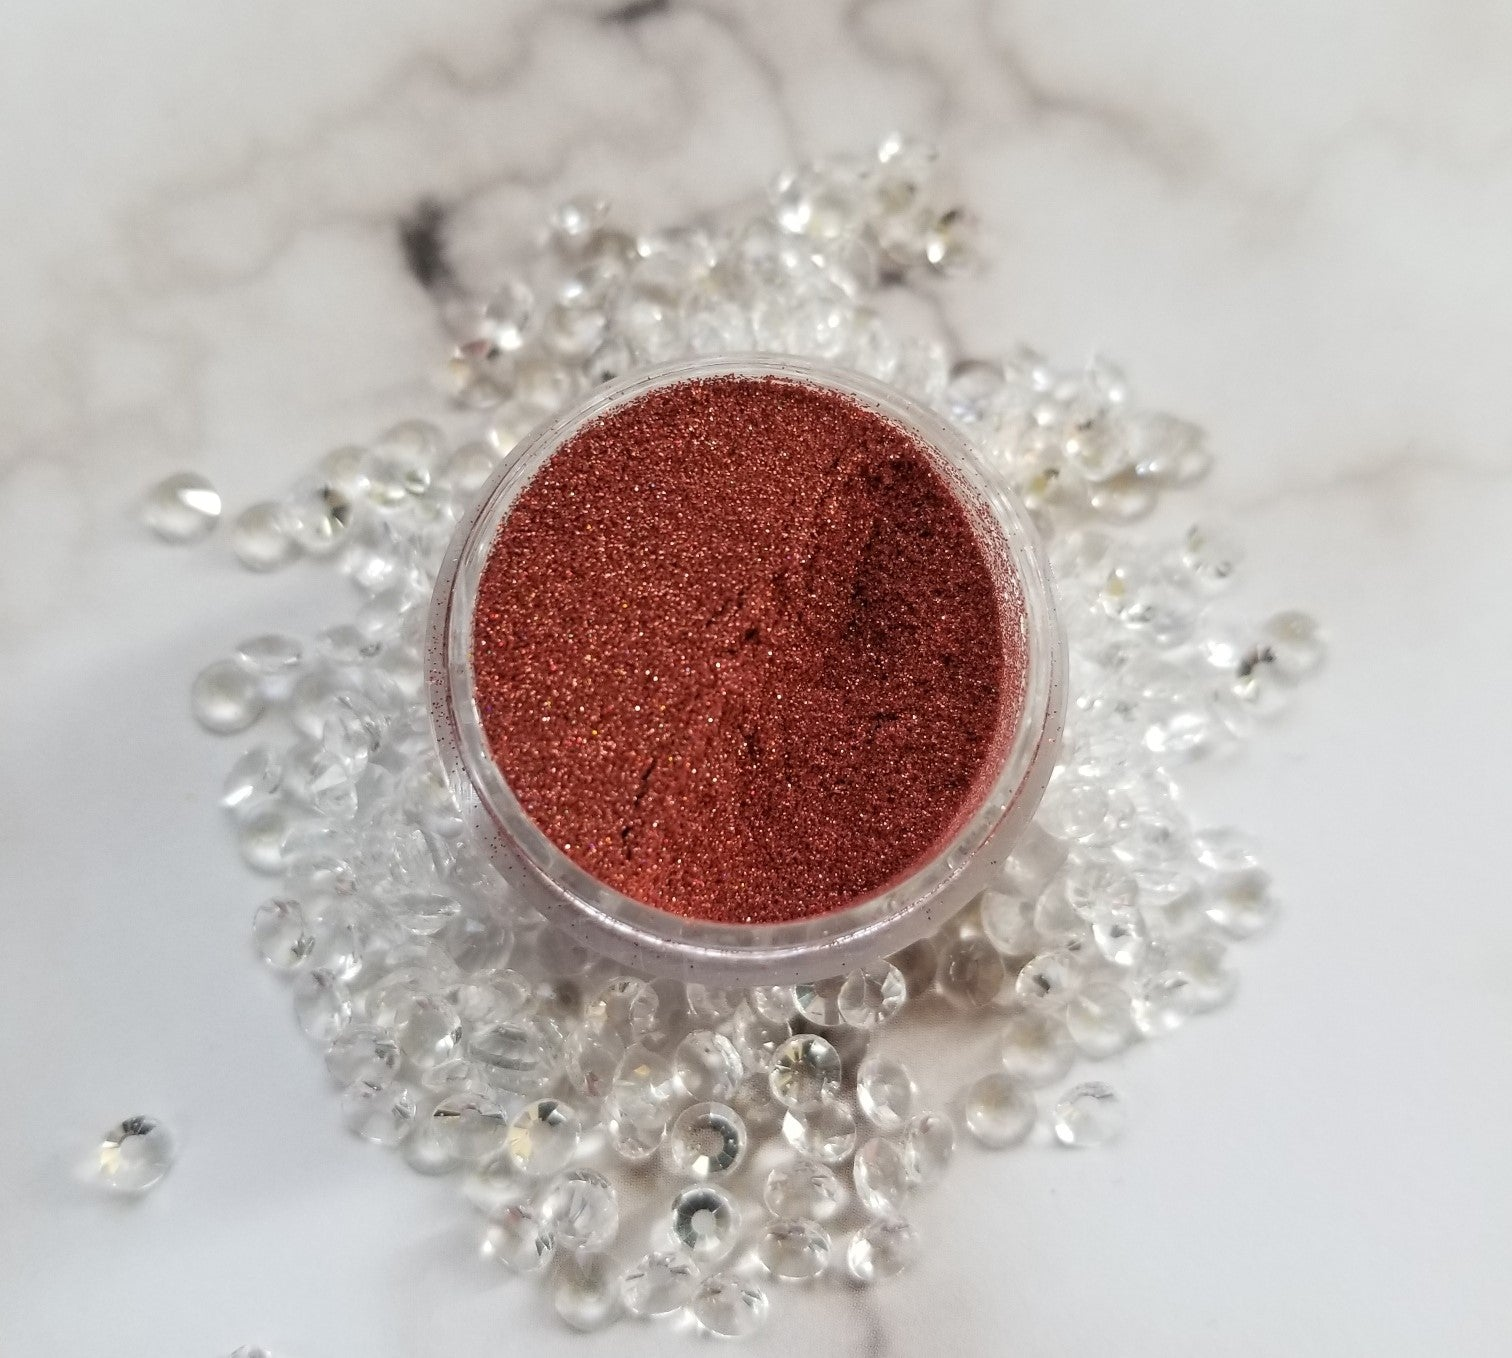 shade beauty, indie makeup, indie brand, handmade, artisan, made in the usa, made in michigan, cruelty free, vegan, glitter, loose glitter, festival makeup, orange glitter, spontaneous combustion, spontaneous combustion loose glitter, bronze glitter, copper glitter, orange glitter, holographic glitter, holographic bronze glitter